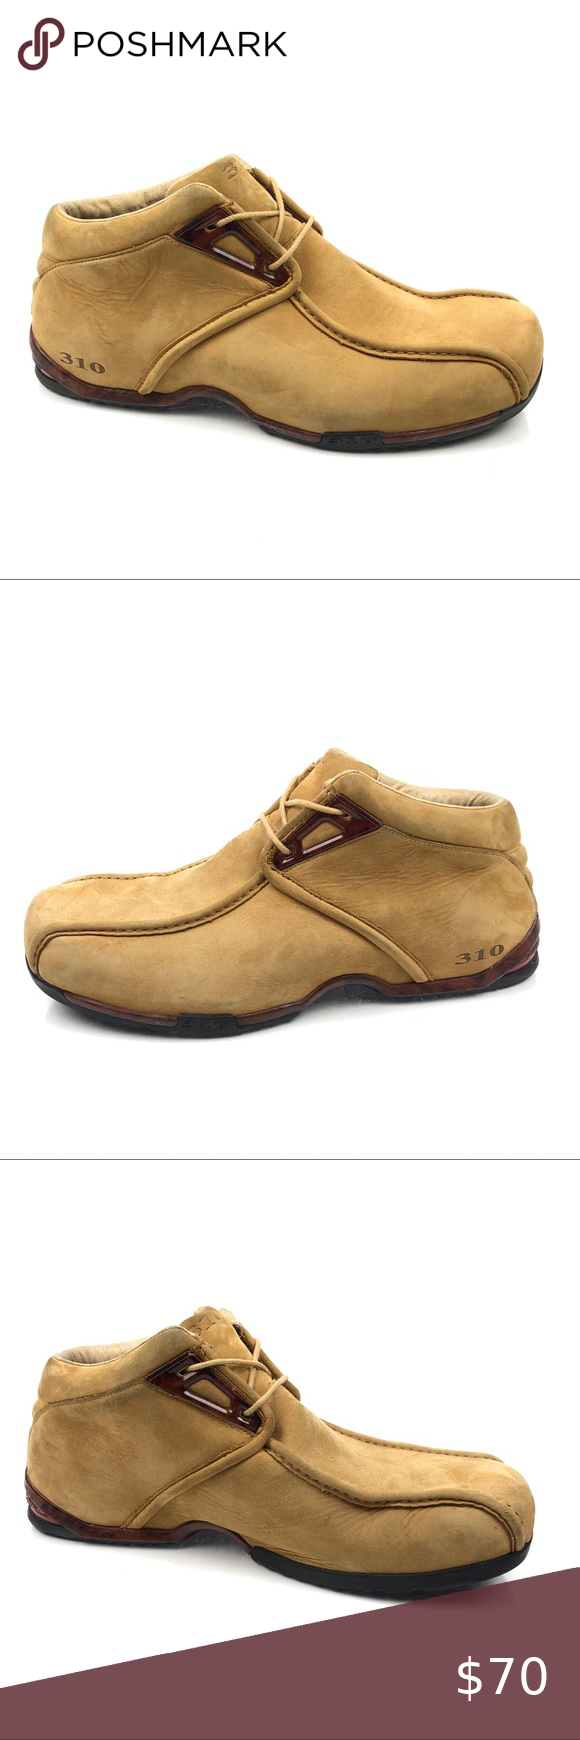 """310 Motoring Suede Chukka Boots 310 Motoring Wheat Tan Suede Leather Woodgrain Chukka Boots 0904   Mens Size 13  """"Very Good Pre-owned Condition - Please zoom in on photos for detailed condition. Some stains throughout.""""  A41 - 014020812 310 Motoring Shoes Chukka Boots"""